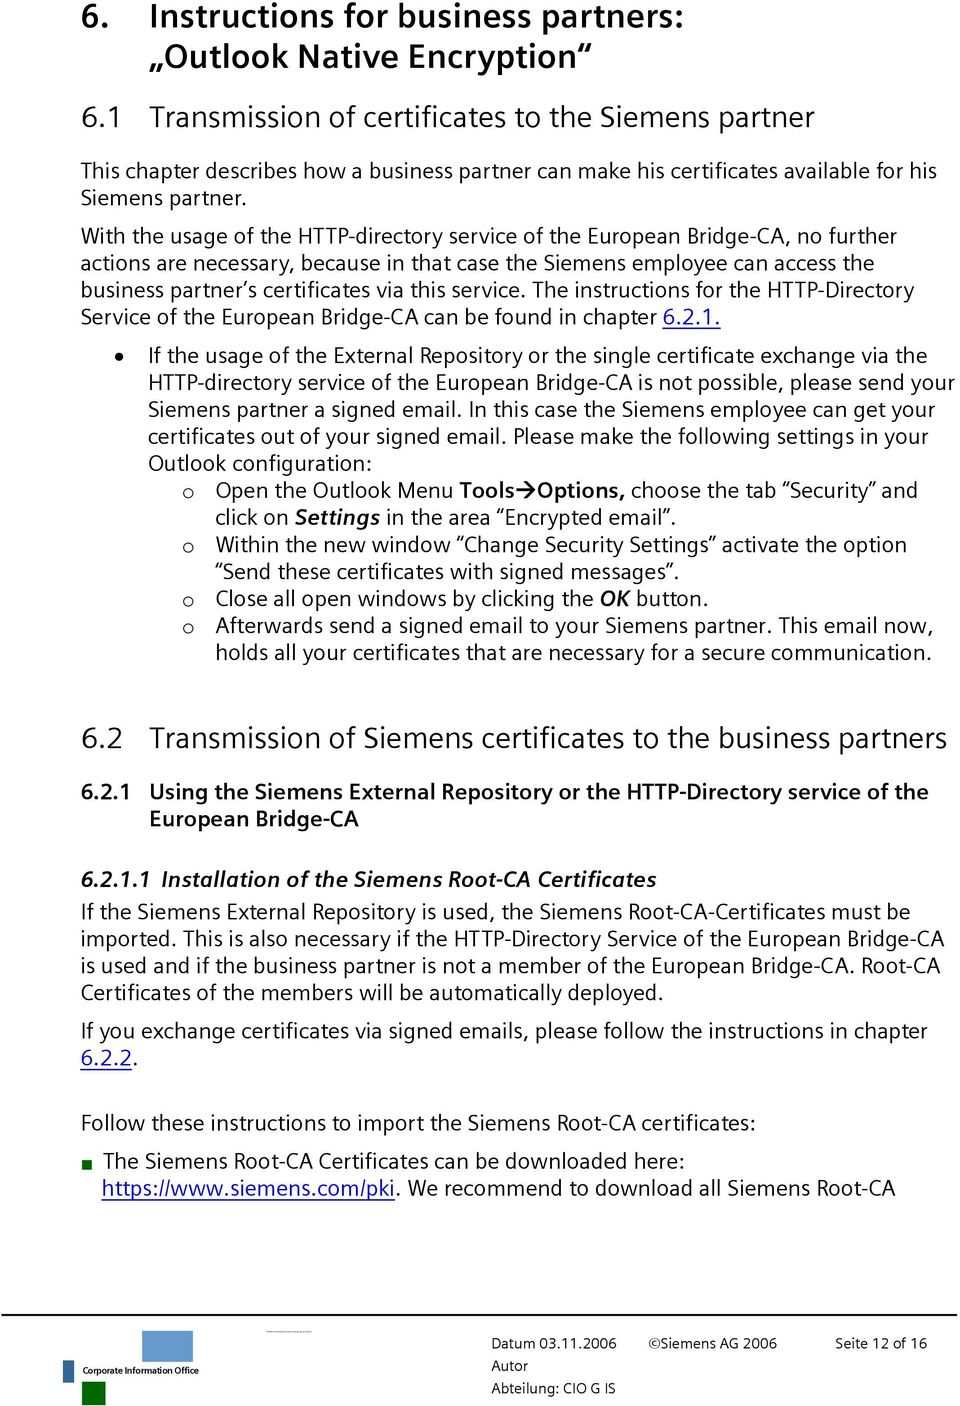 With the usage of the HTTP-directory service of the European Bridge-CA, no further actions are necessary, because in that case the Siemens employee can access the business partner s certificates via